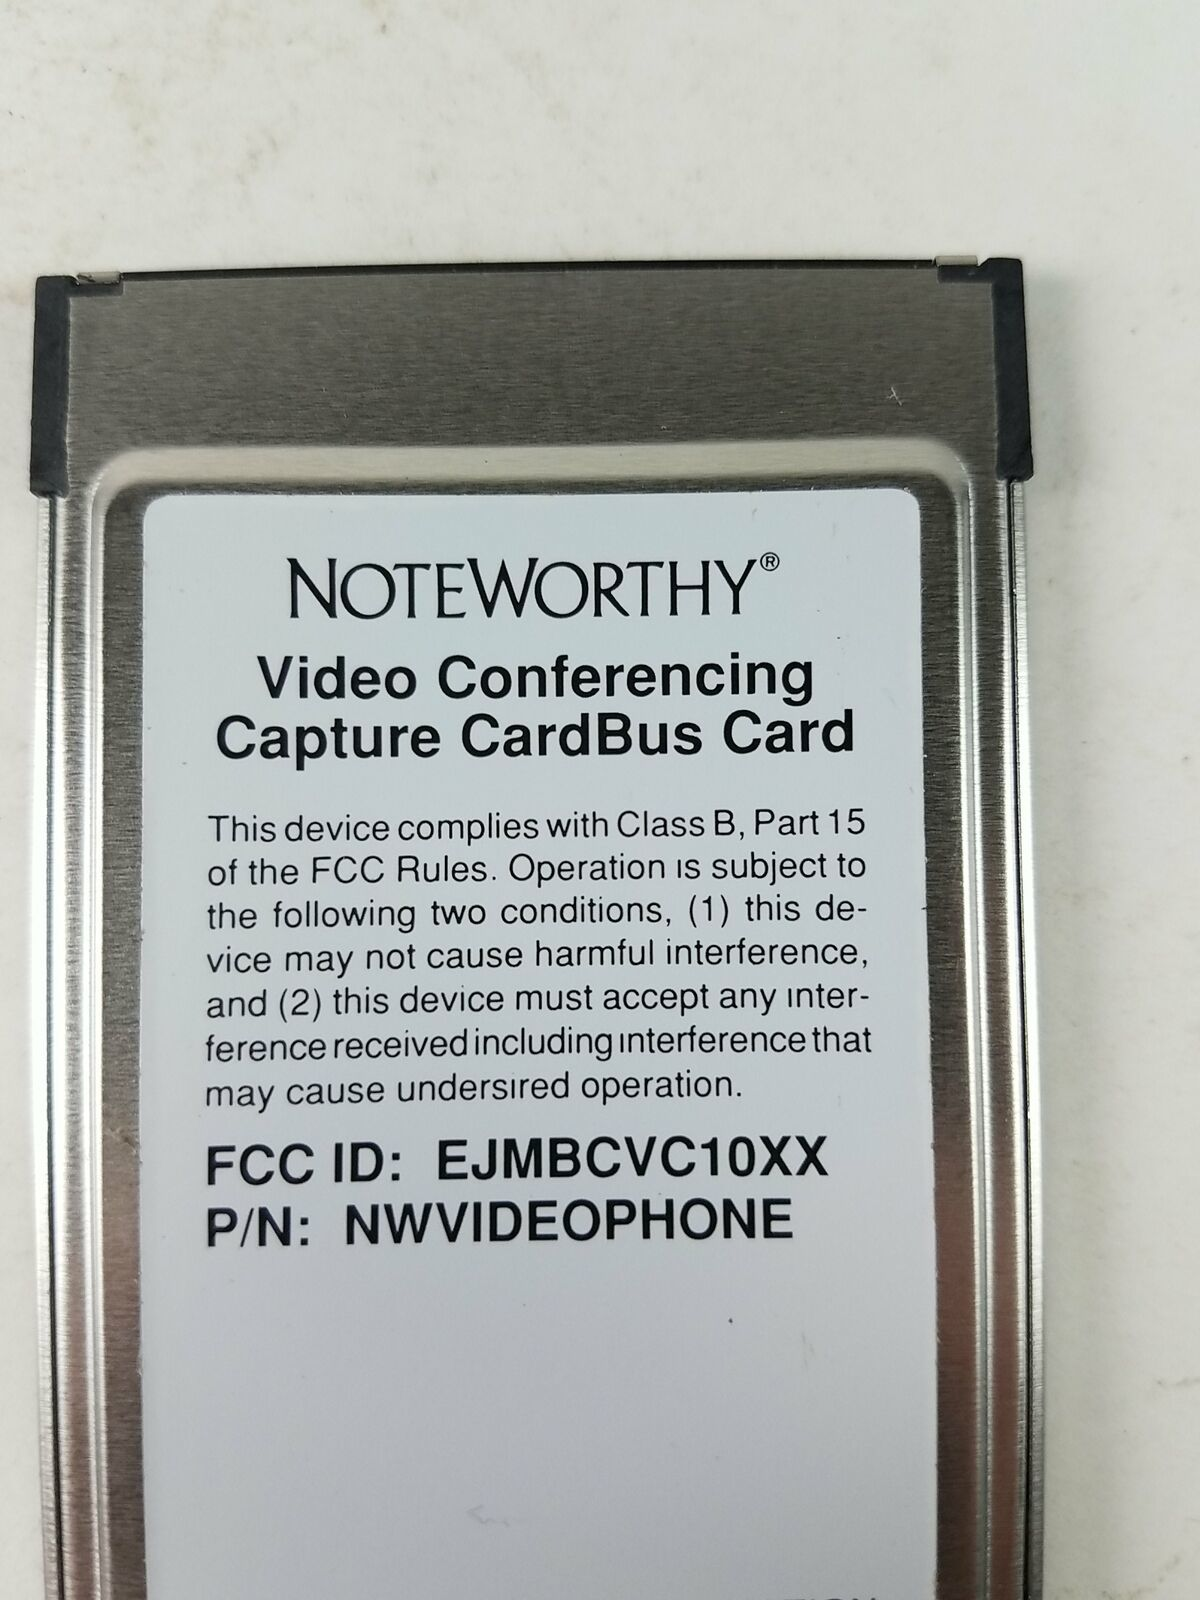 Noteworthy Video Conferencing NWVIDEOPHONE Capture Cardbus Card